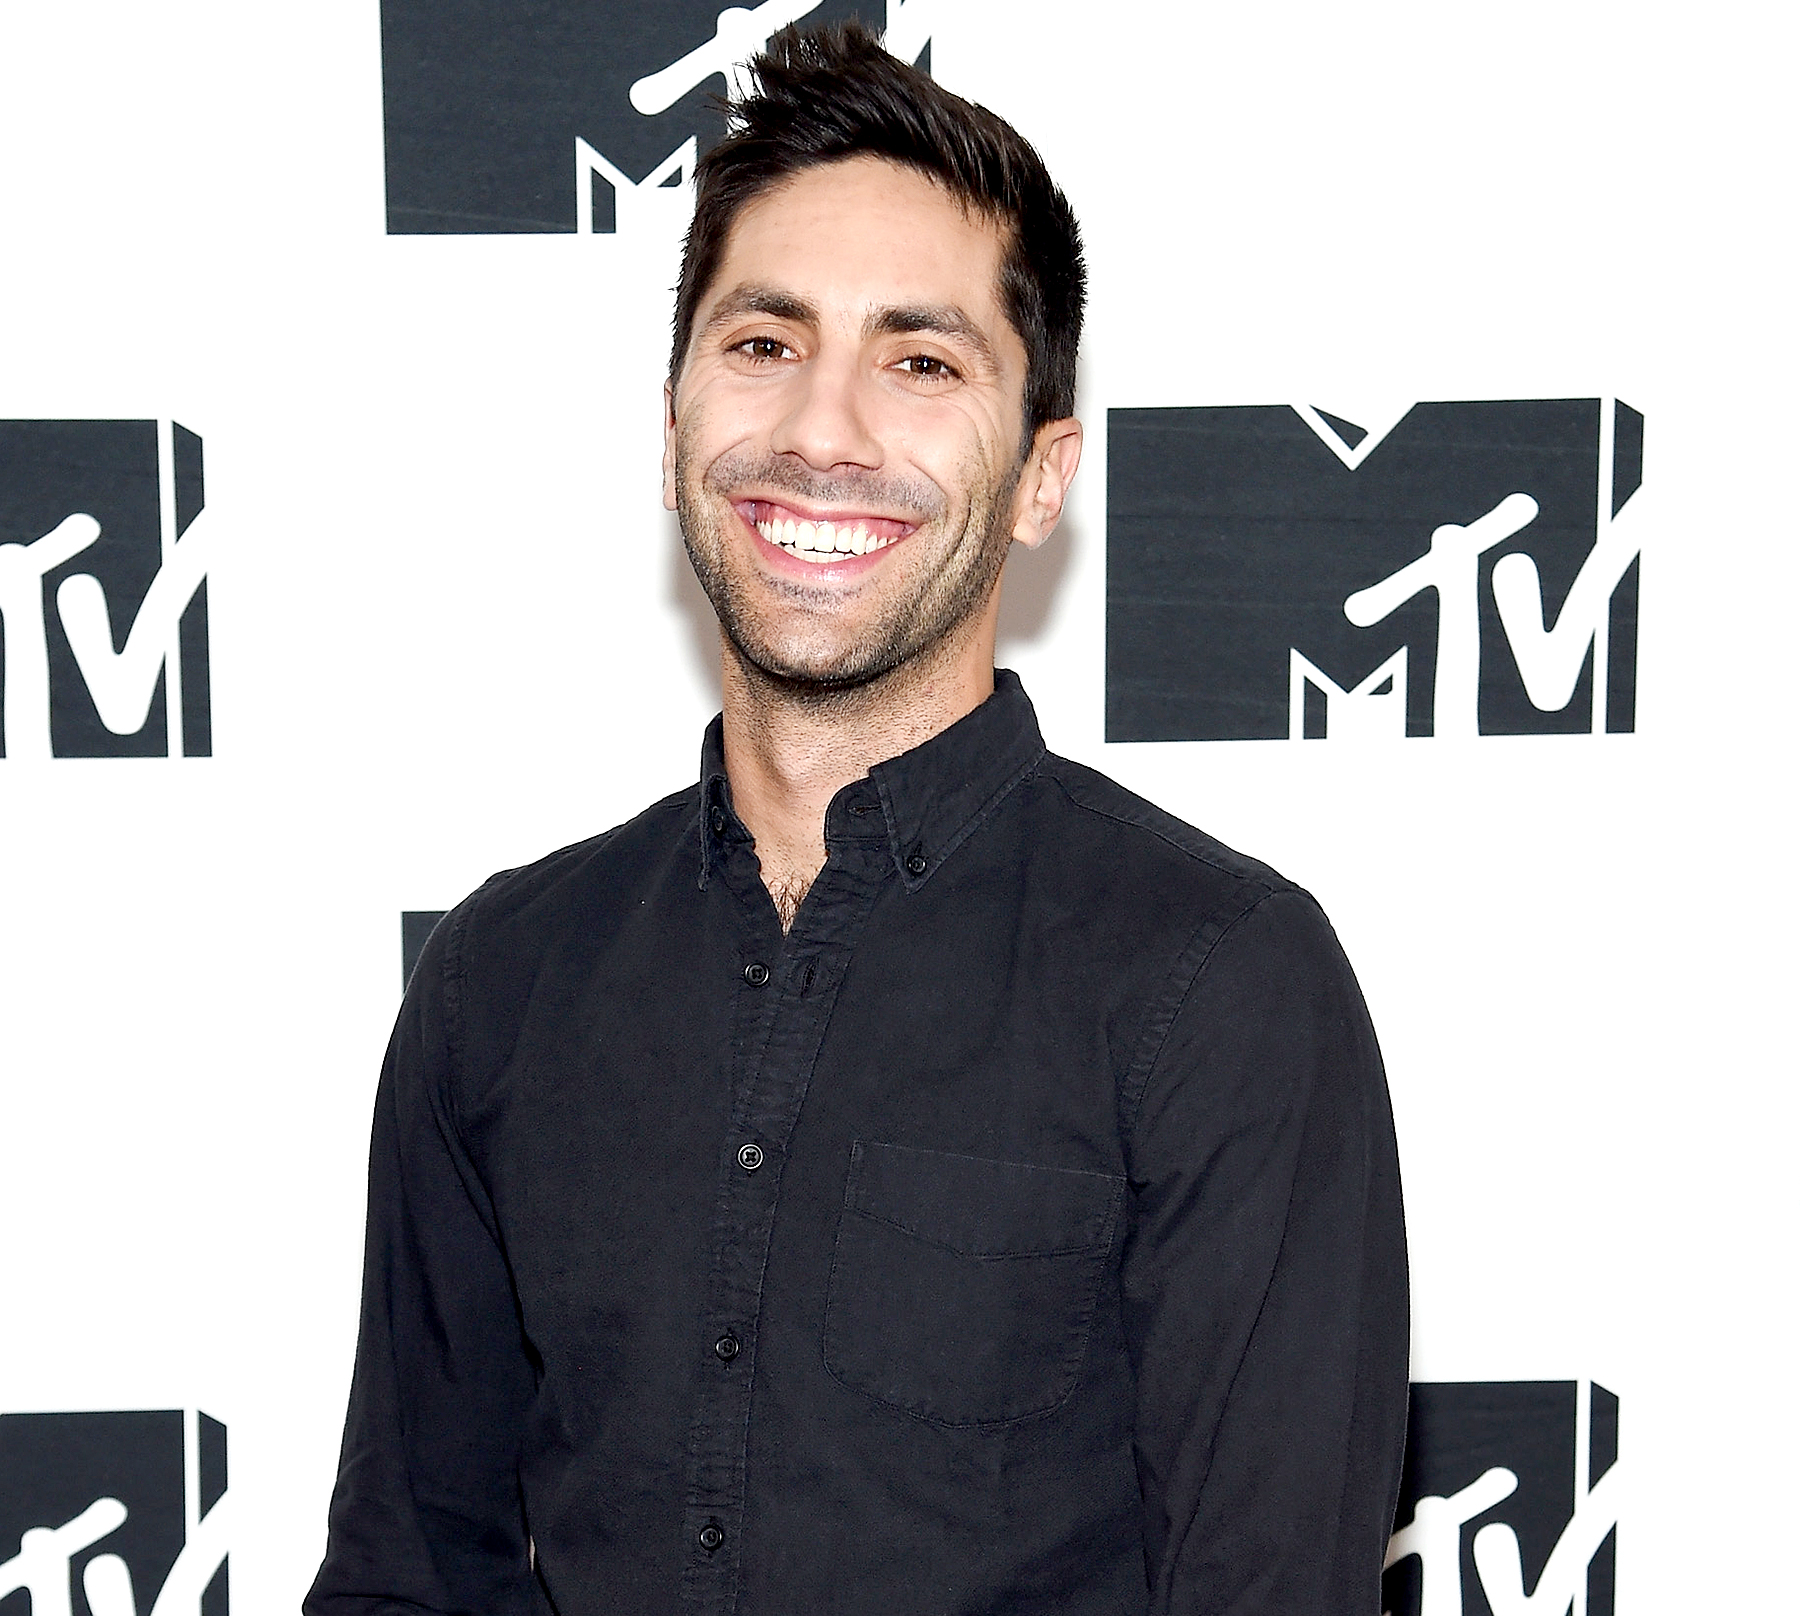 Nev-Schulman - The city so nice, he's run it more than twice!